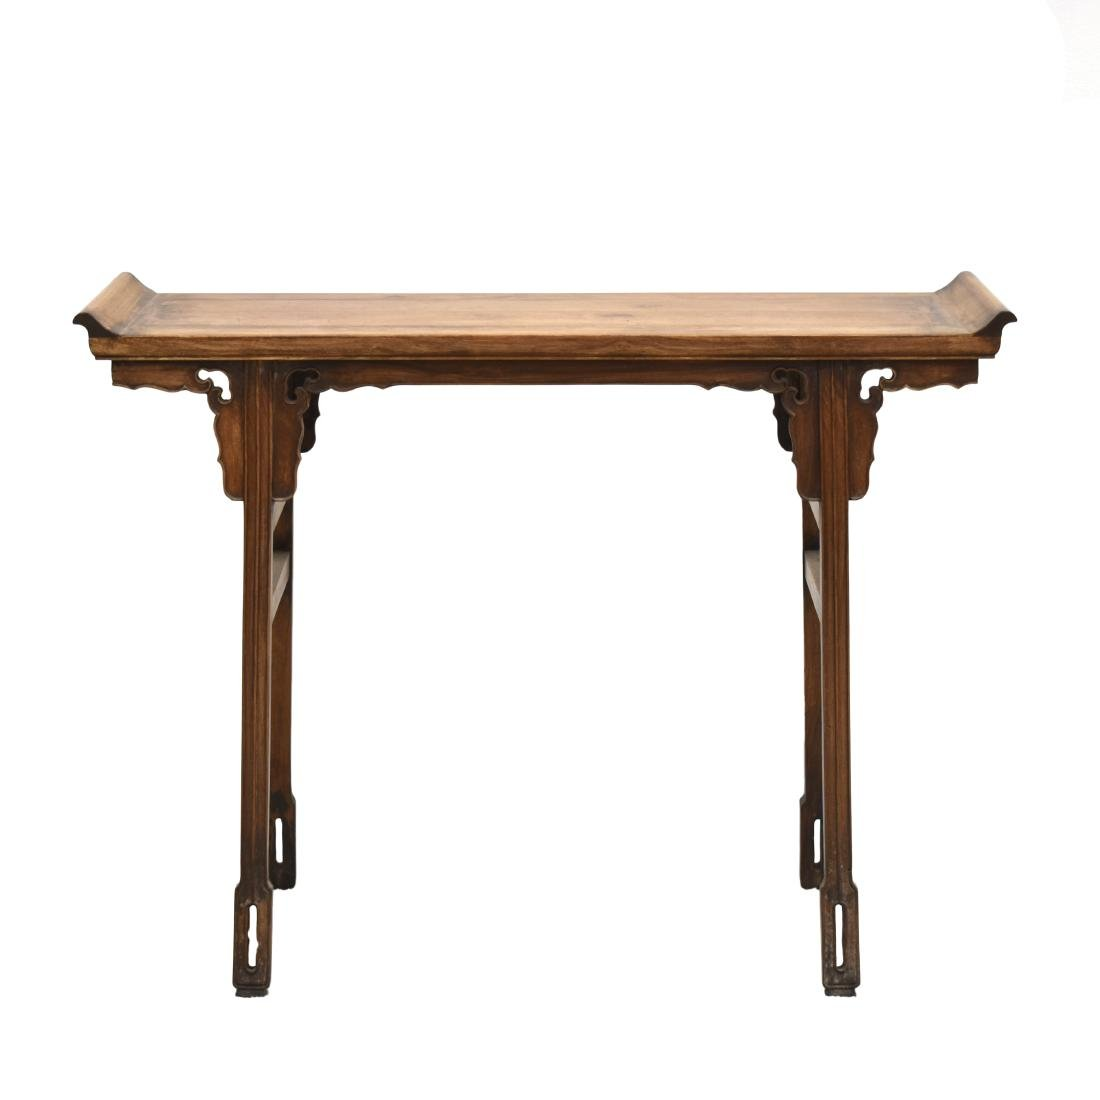 18/19TH C CHINESE ANTIQUE HUANGHUALI ALTAR TABLE